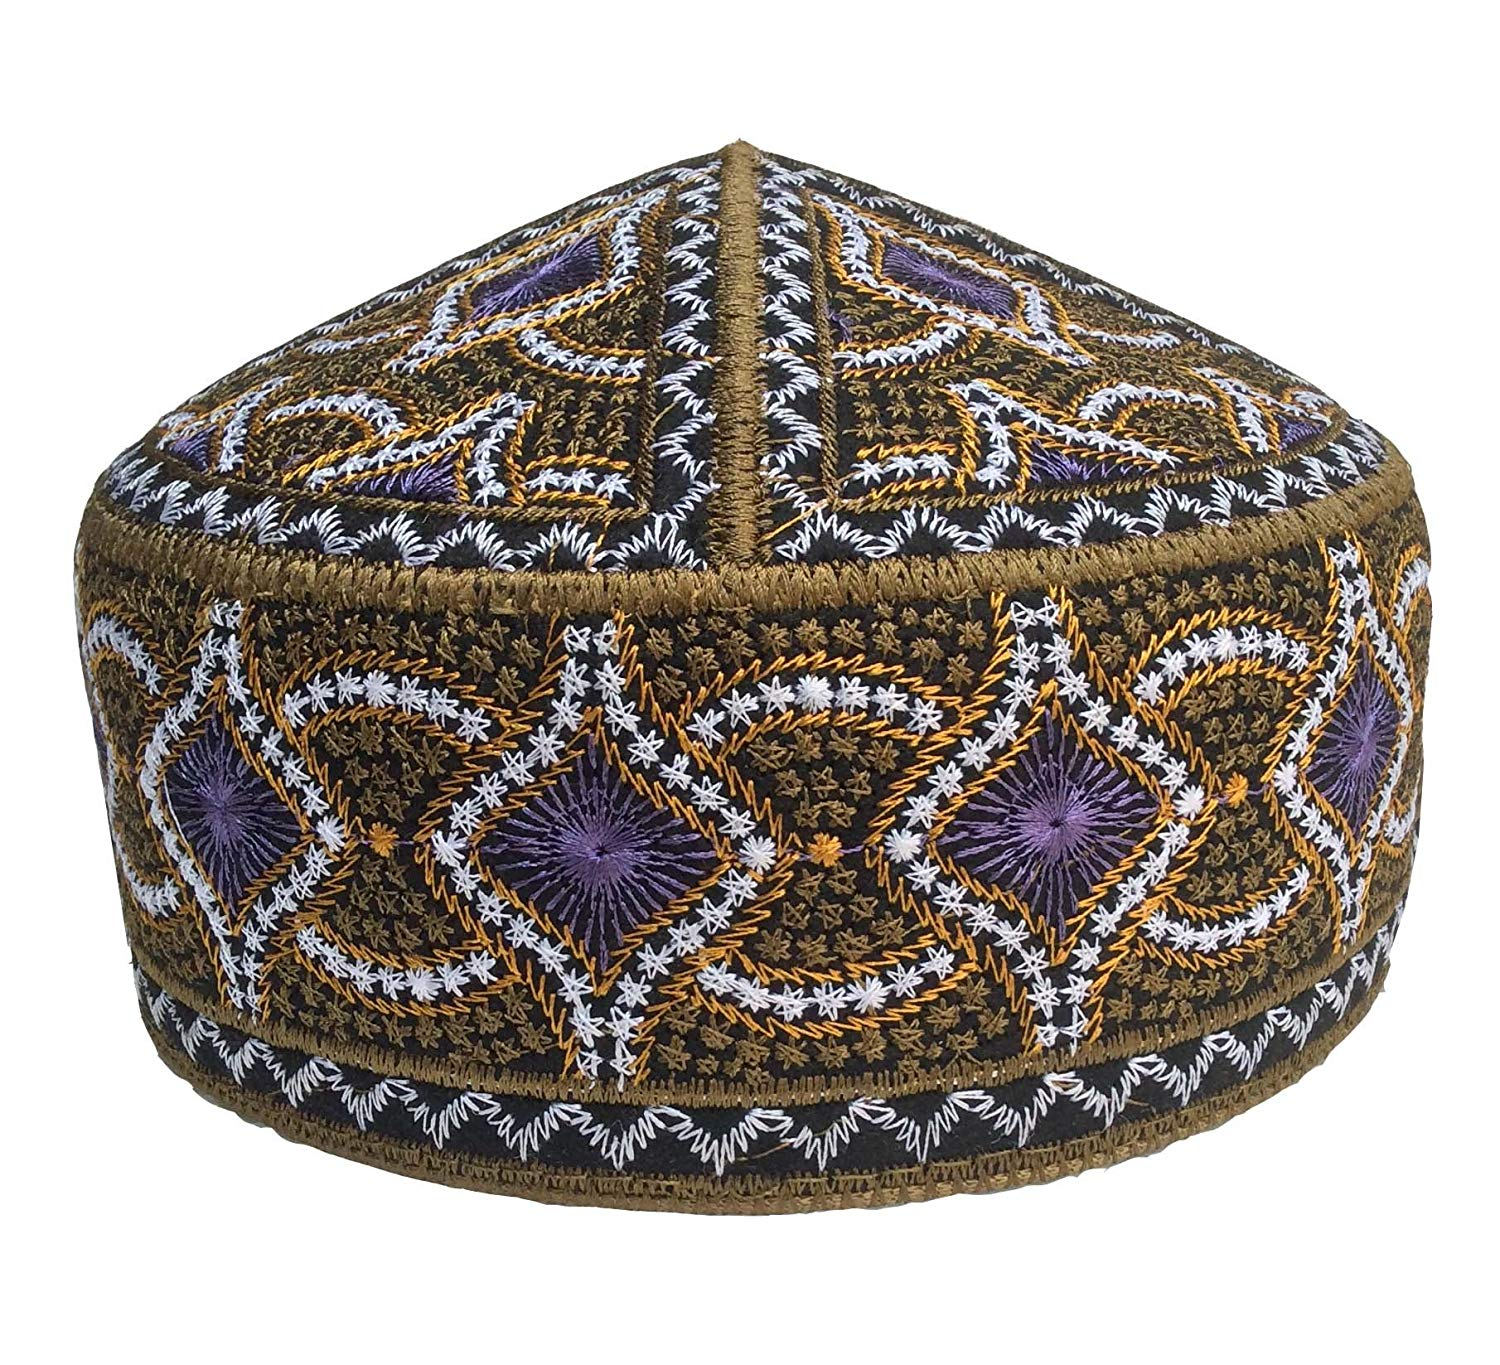 159a3ea4001 NDA Special Afgani Cap Hand Embroidered Islamic Muslim Knitting Kufi Topi  Prayer Hat Skull Cap